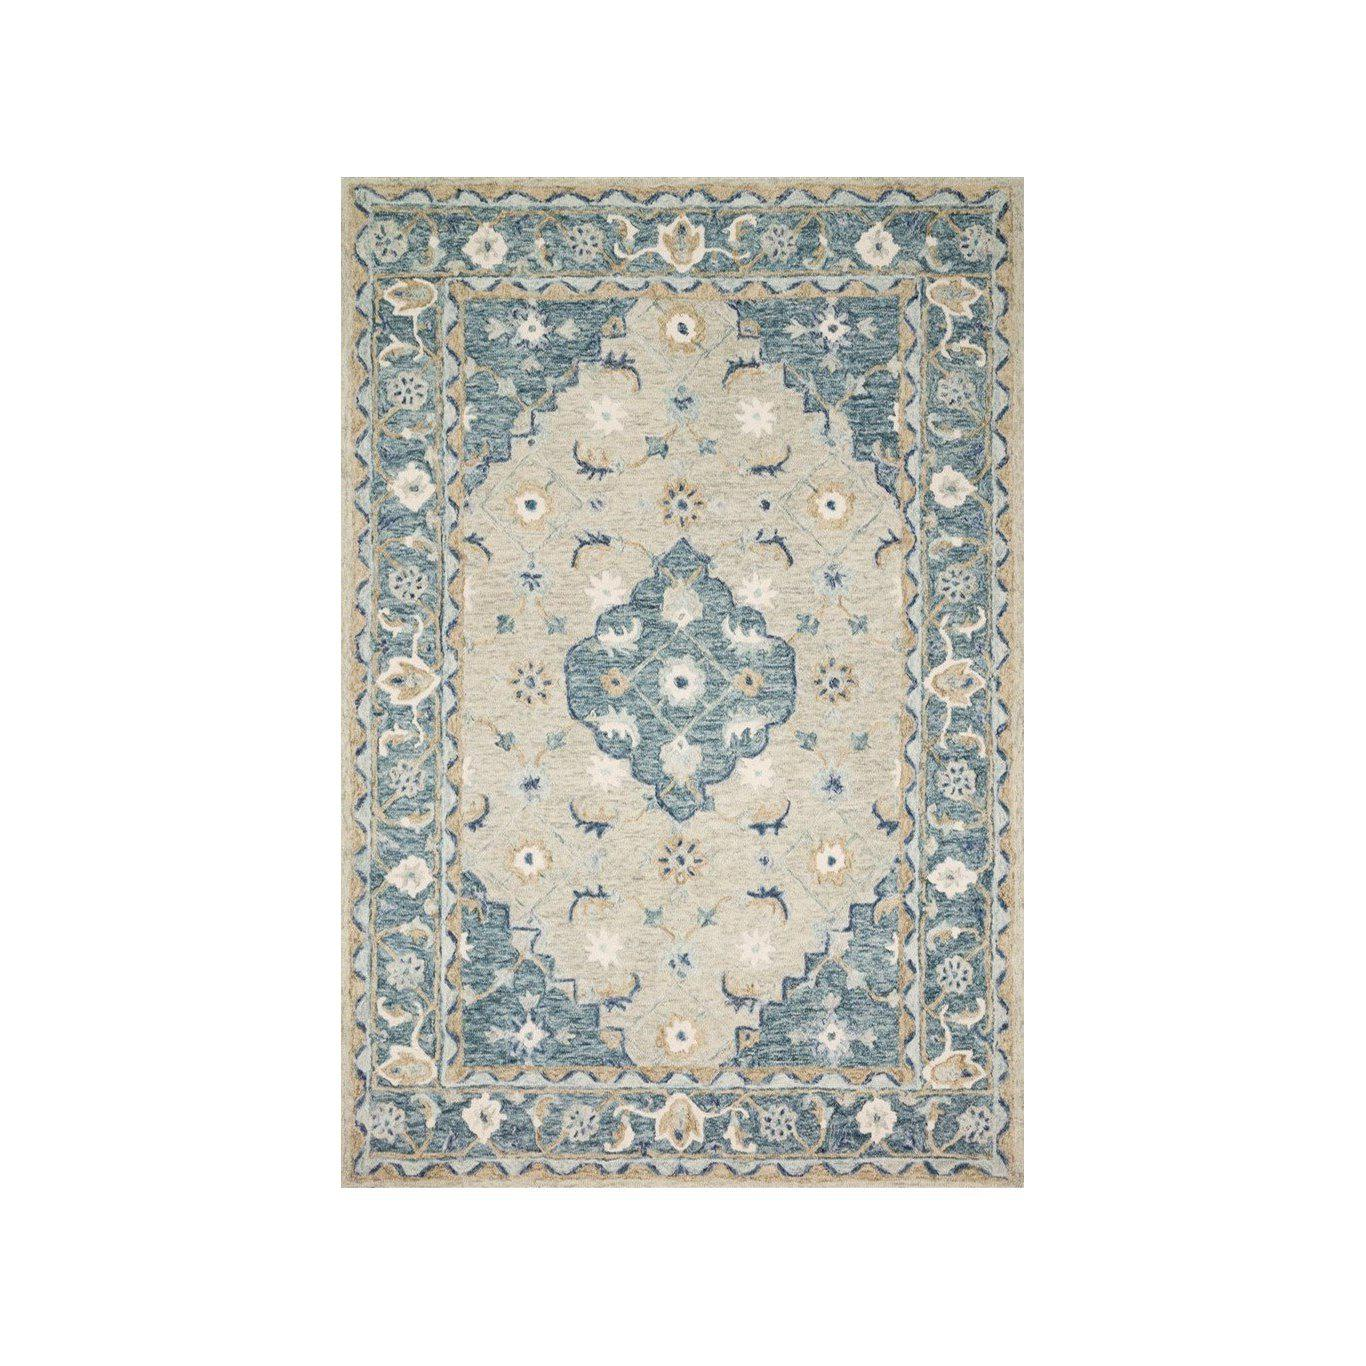 Joanna Gaines Ryeland Rug Collection - RYE-05 Grey/Blue-Loloi Rugs-Blue Hand Home